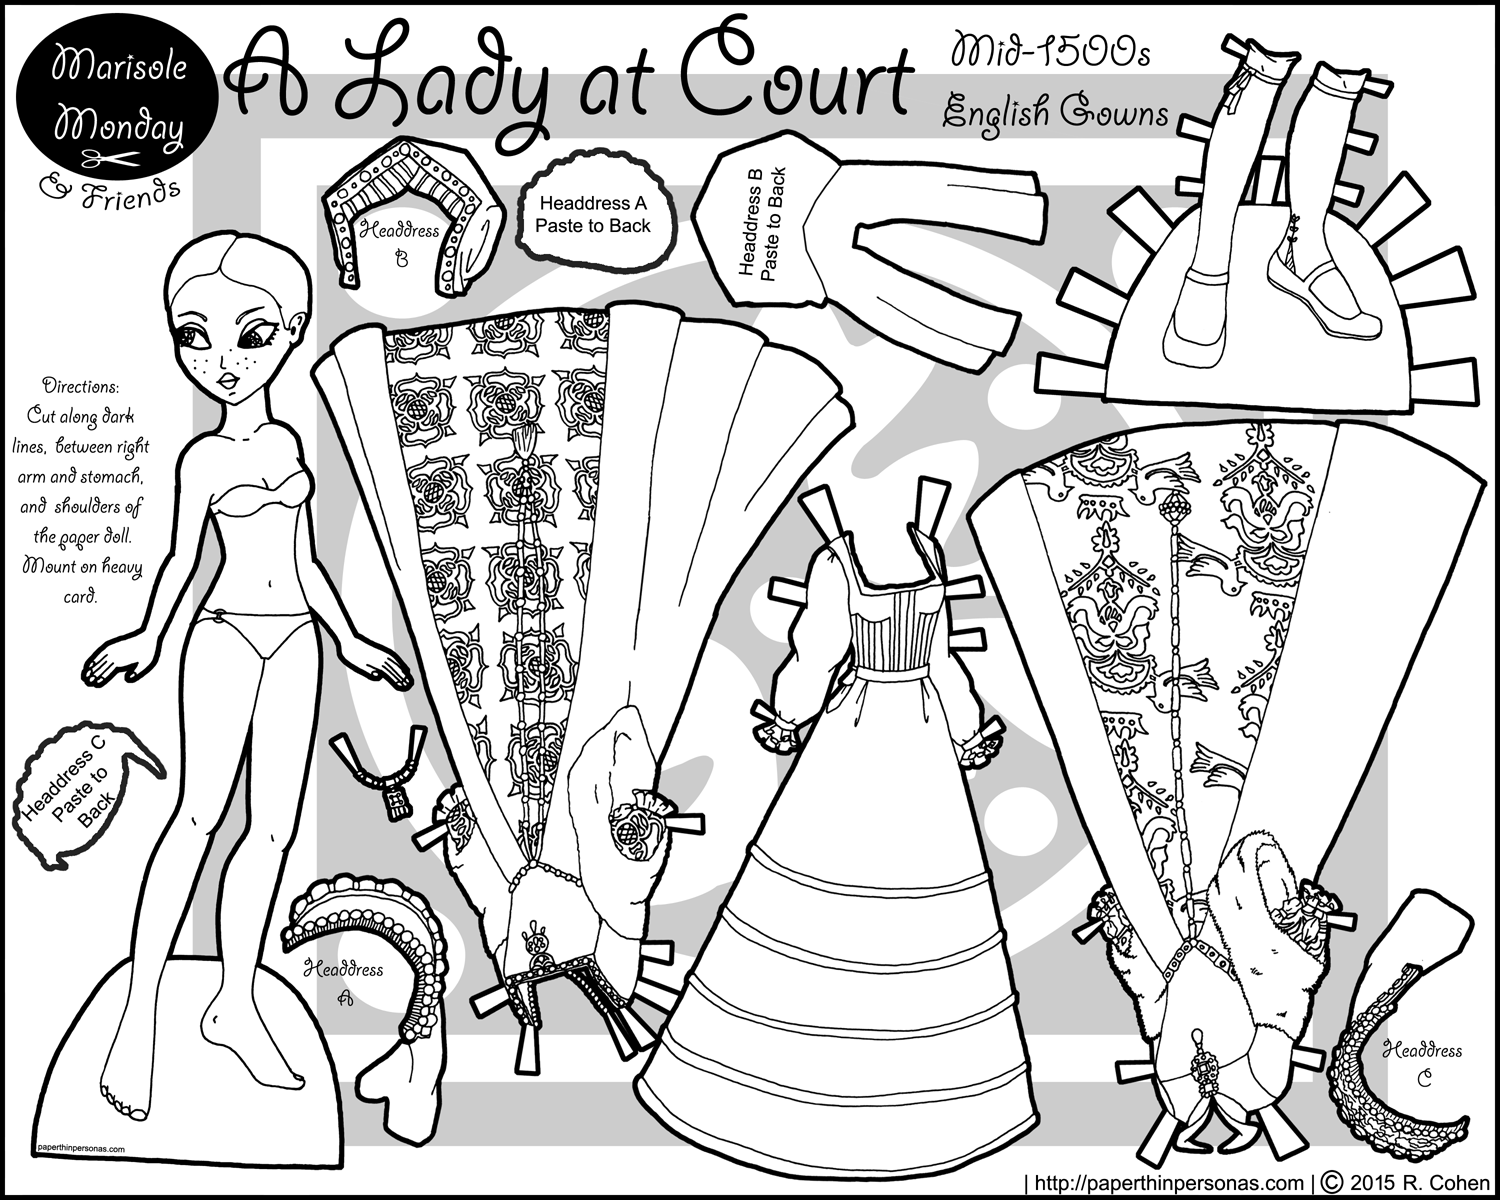 A historical paper doll in Tudor dress from the mid-1500s for printing and coloring from paperthinpersonas.com